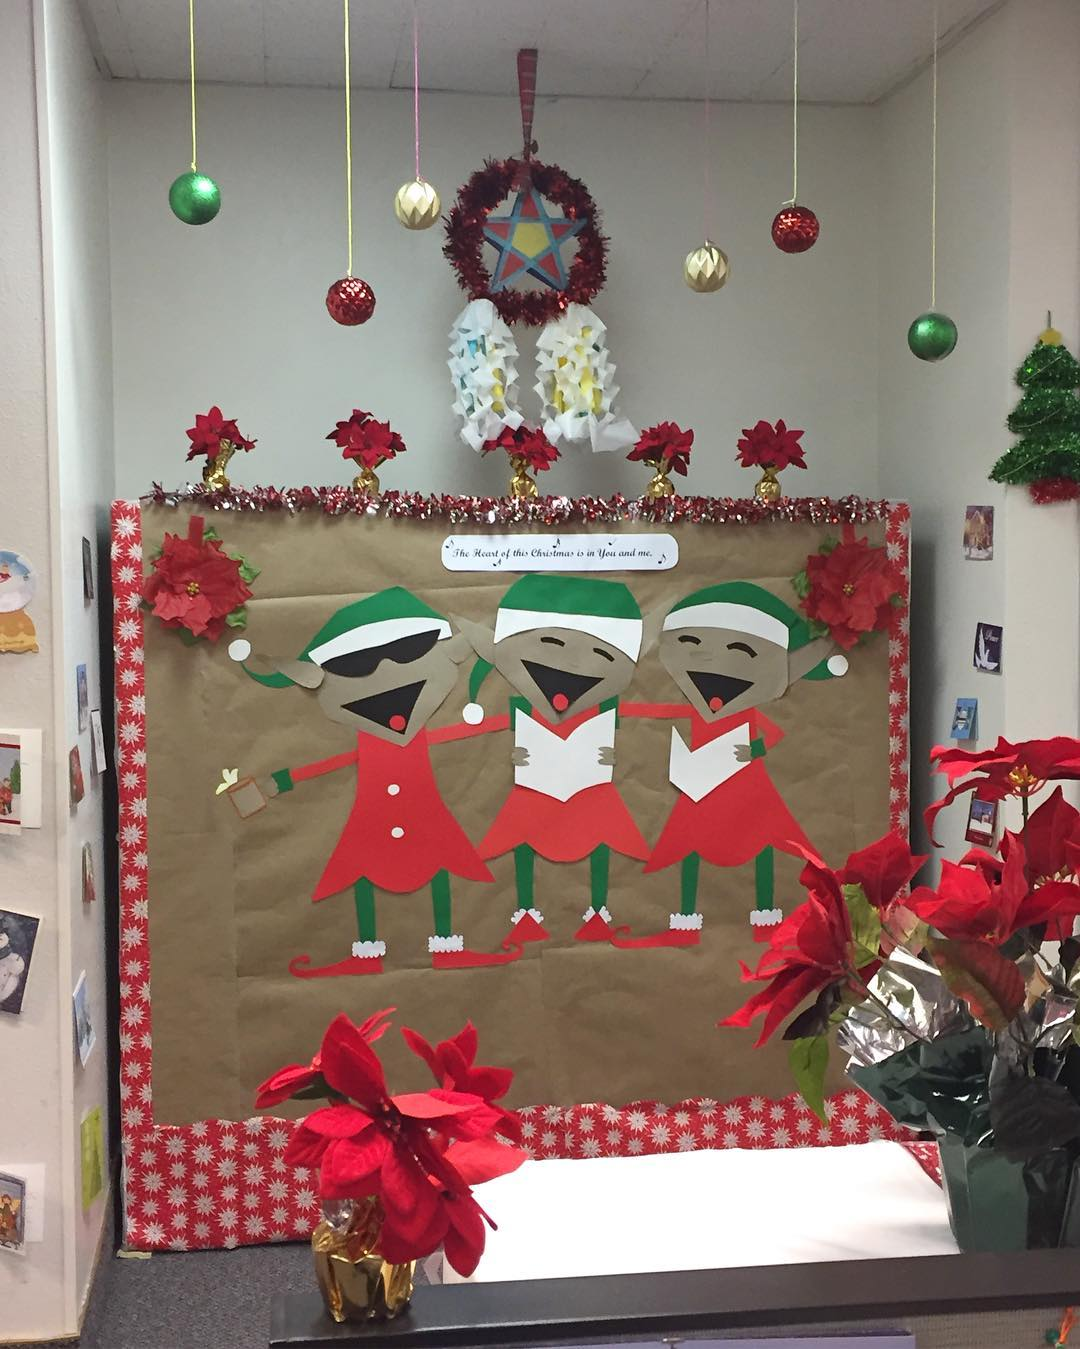 Funky Festive Decoration With Paper Craft And Hanging Ornaments